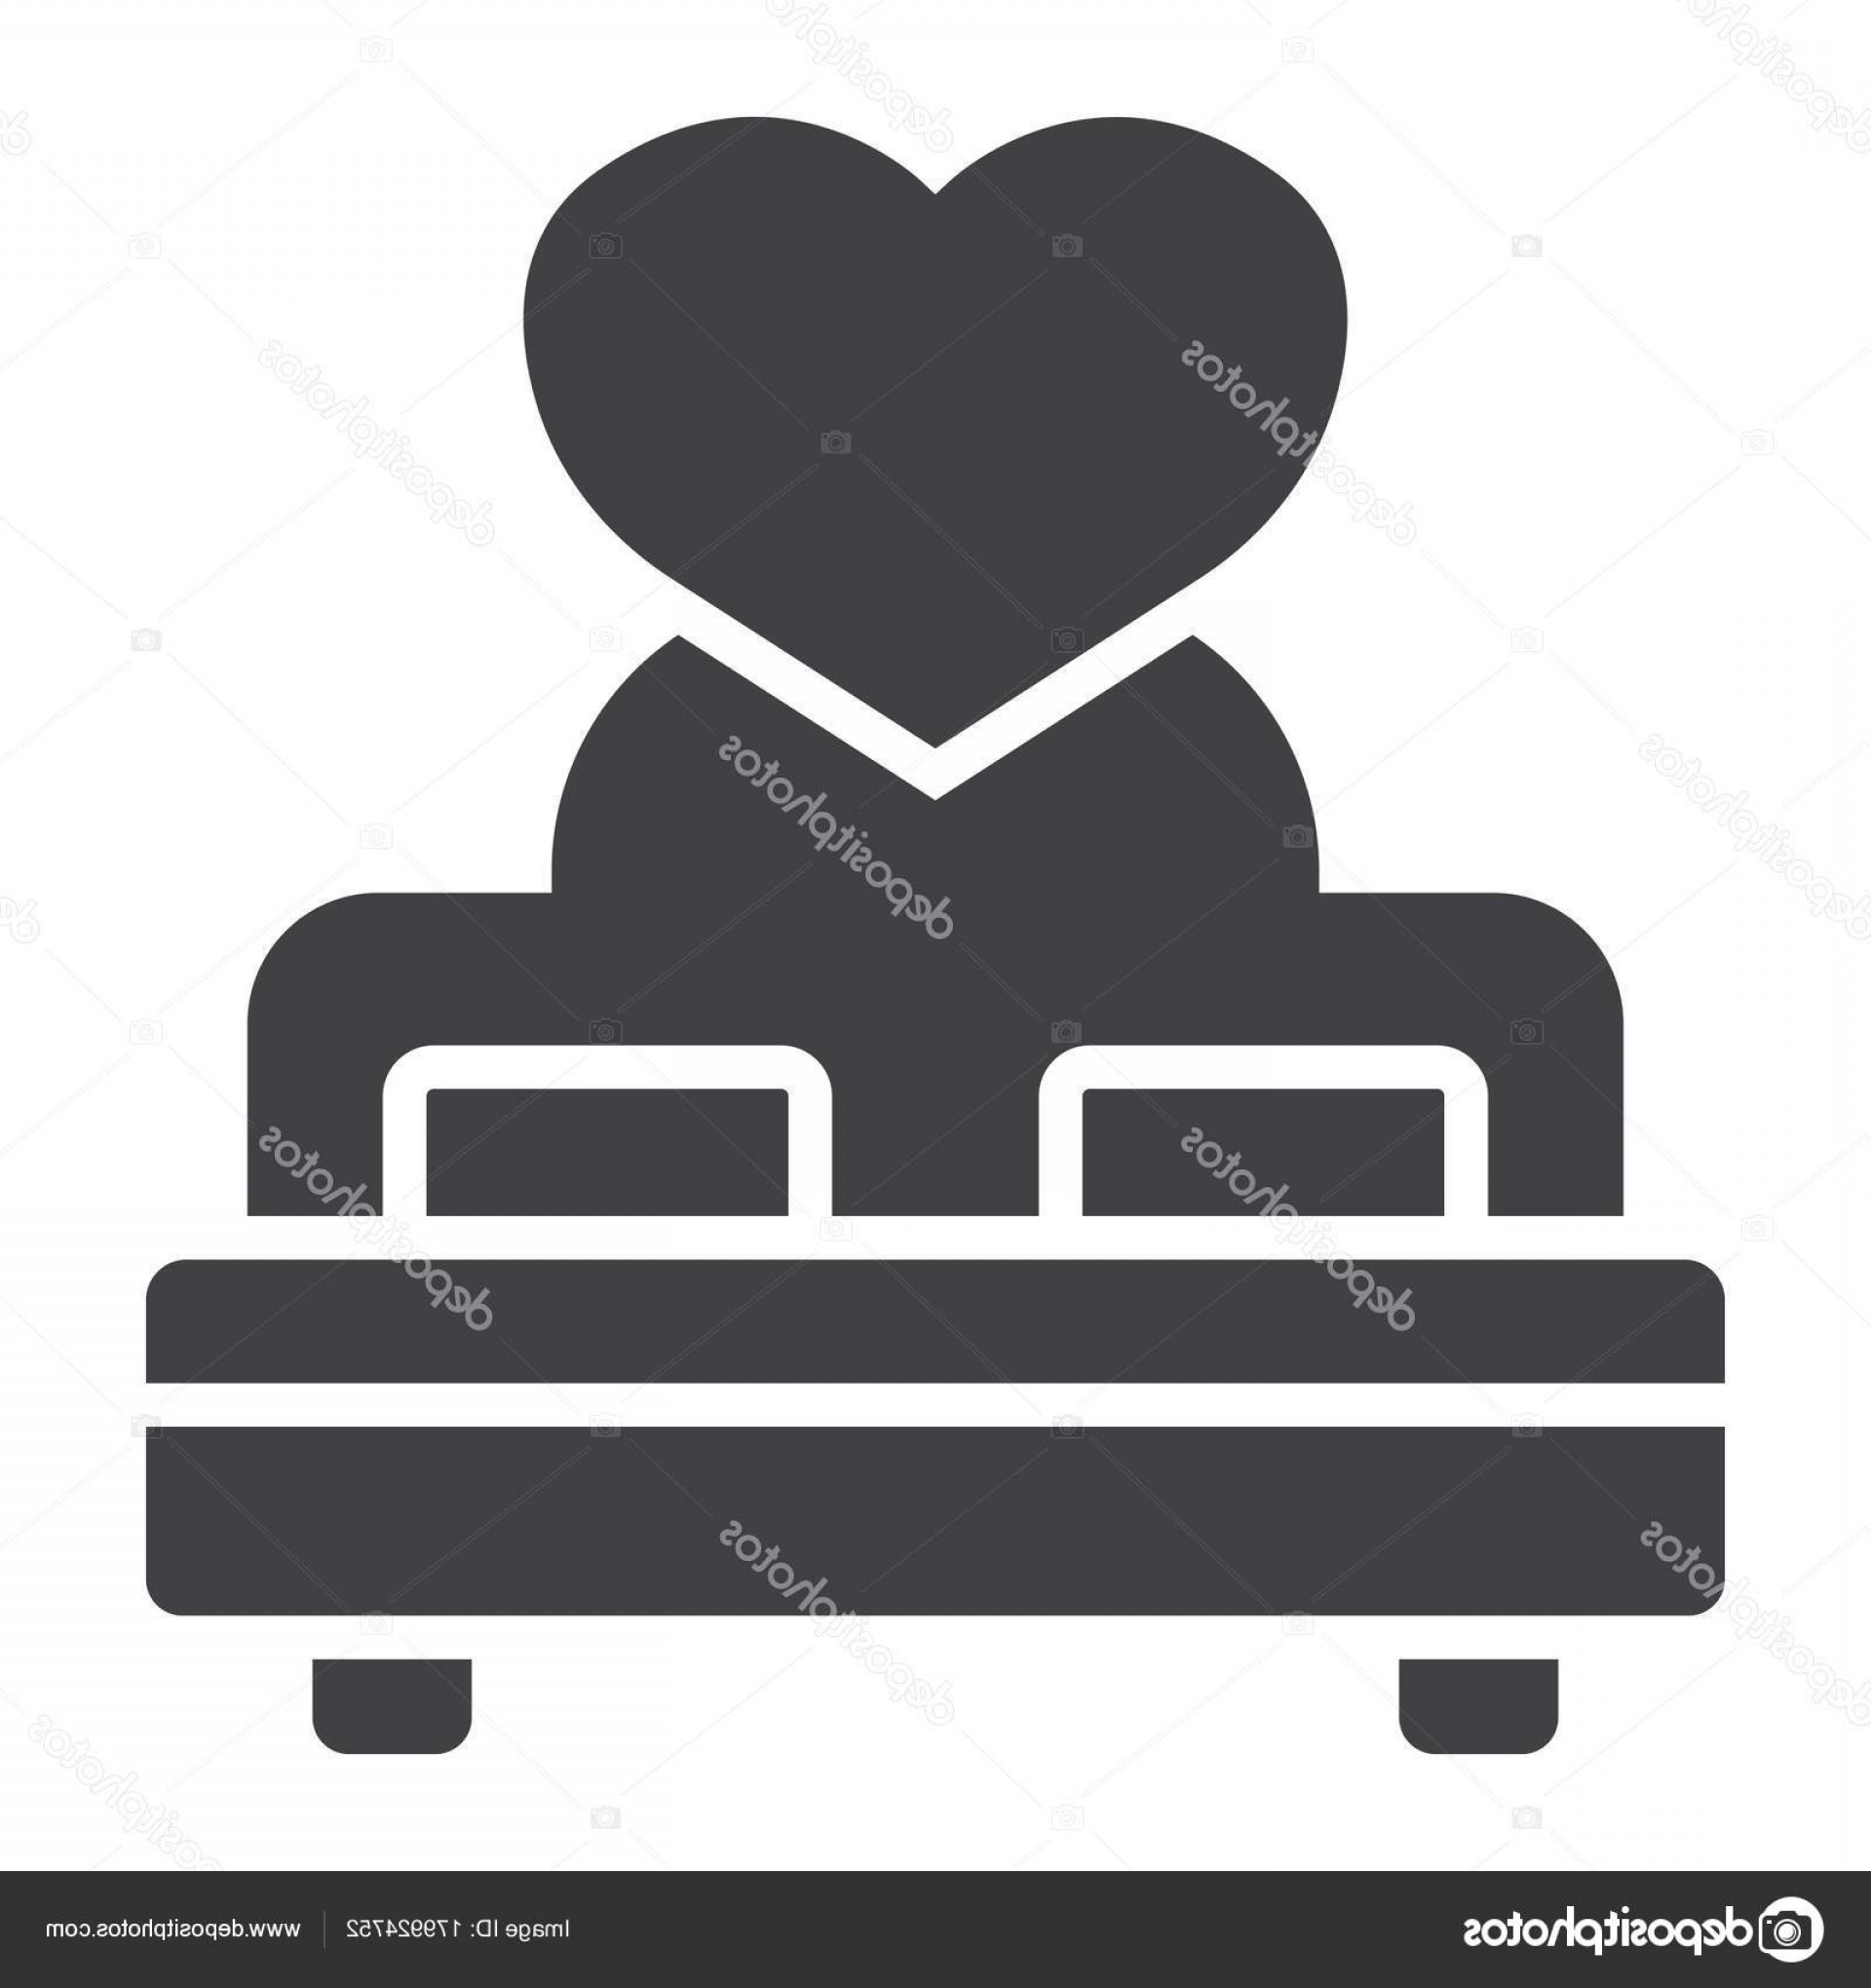 Solid Heart Vector Drawing: Stock Illustration Lovers Bed With Heart Glyph